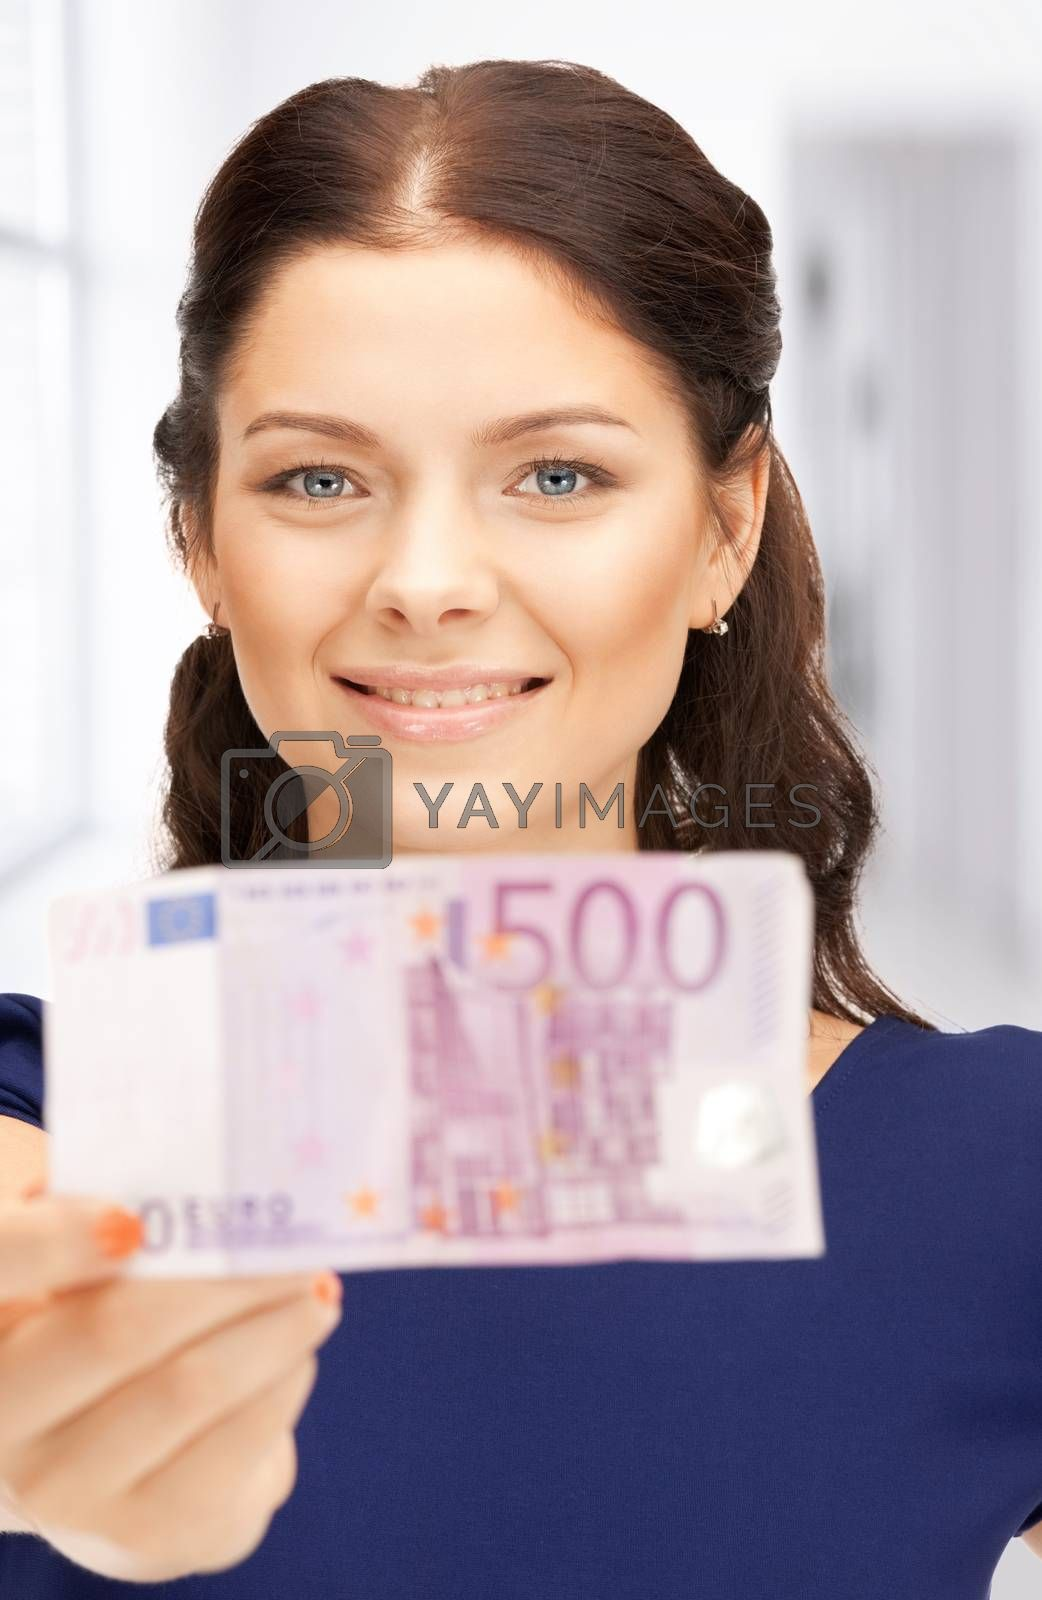 lovely woman with euro cash money by dolgachov